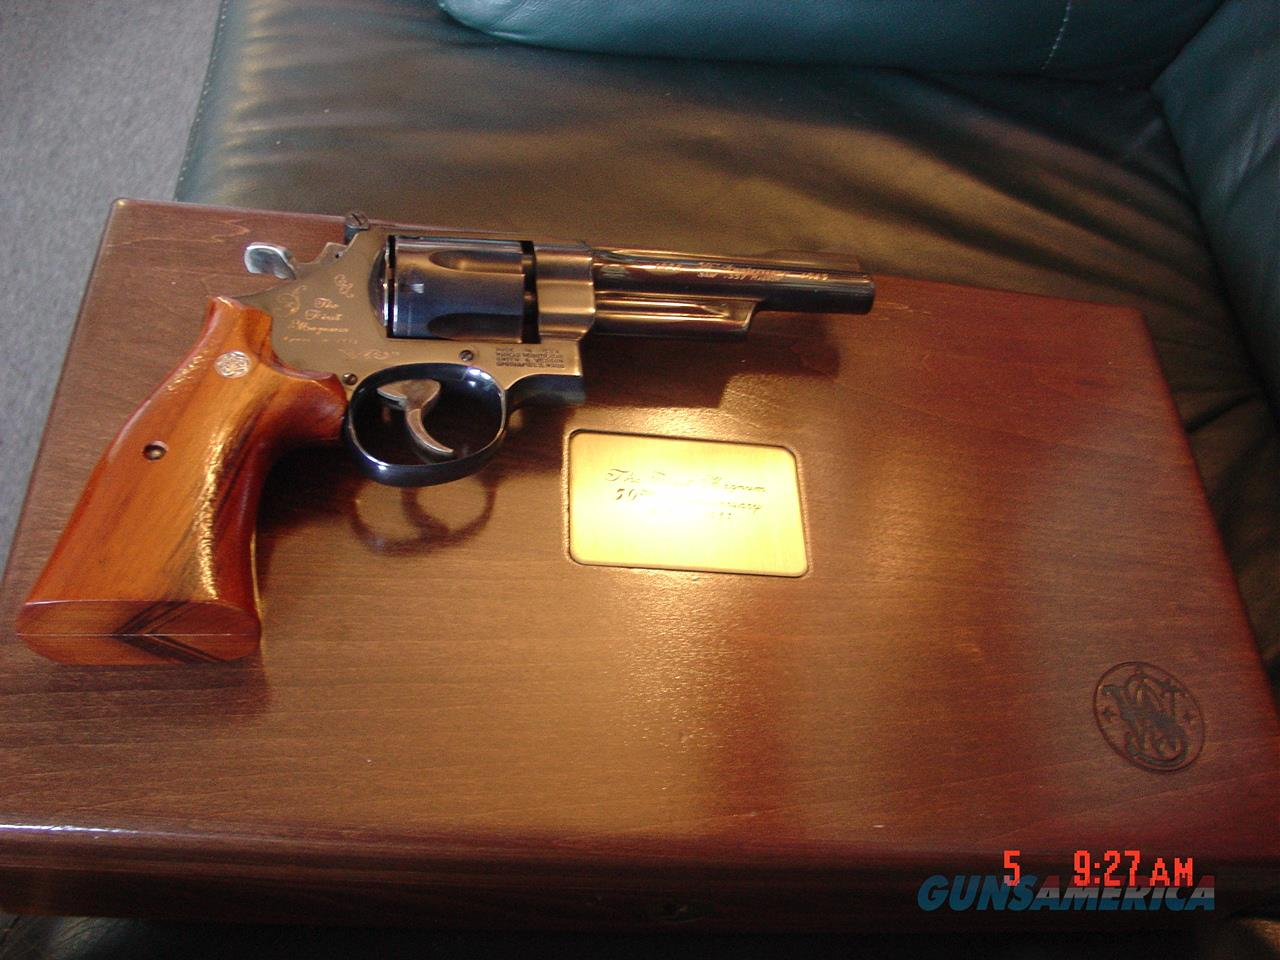 "Smith & Wesson 27-,50 year anniversary of 357 magnum,5"",fitted wood case,Goncalo Alves wood grips,manual,made in 1985,looks unfired,  Guns > Pistols > Smith & Wesson Revolvers > Full Frame Revolver"